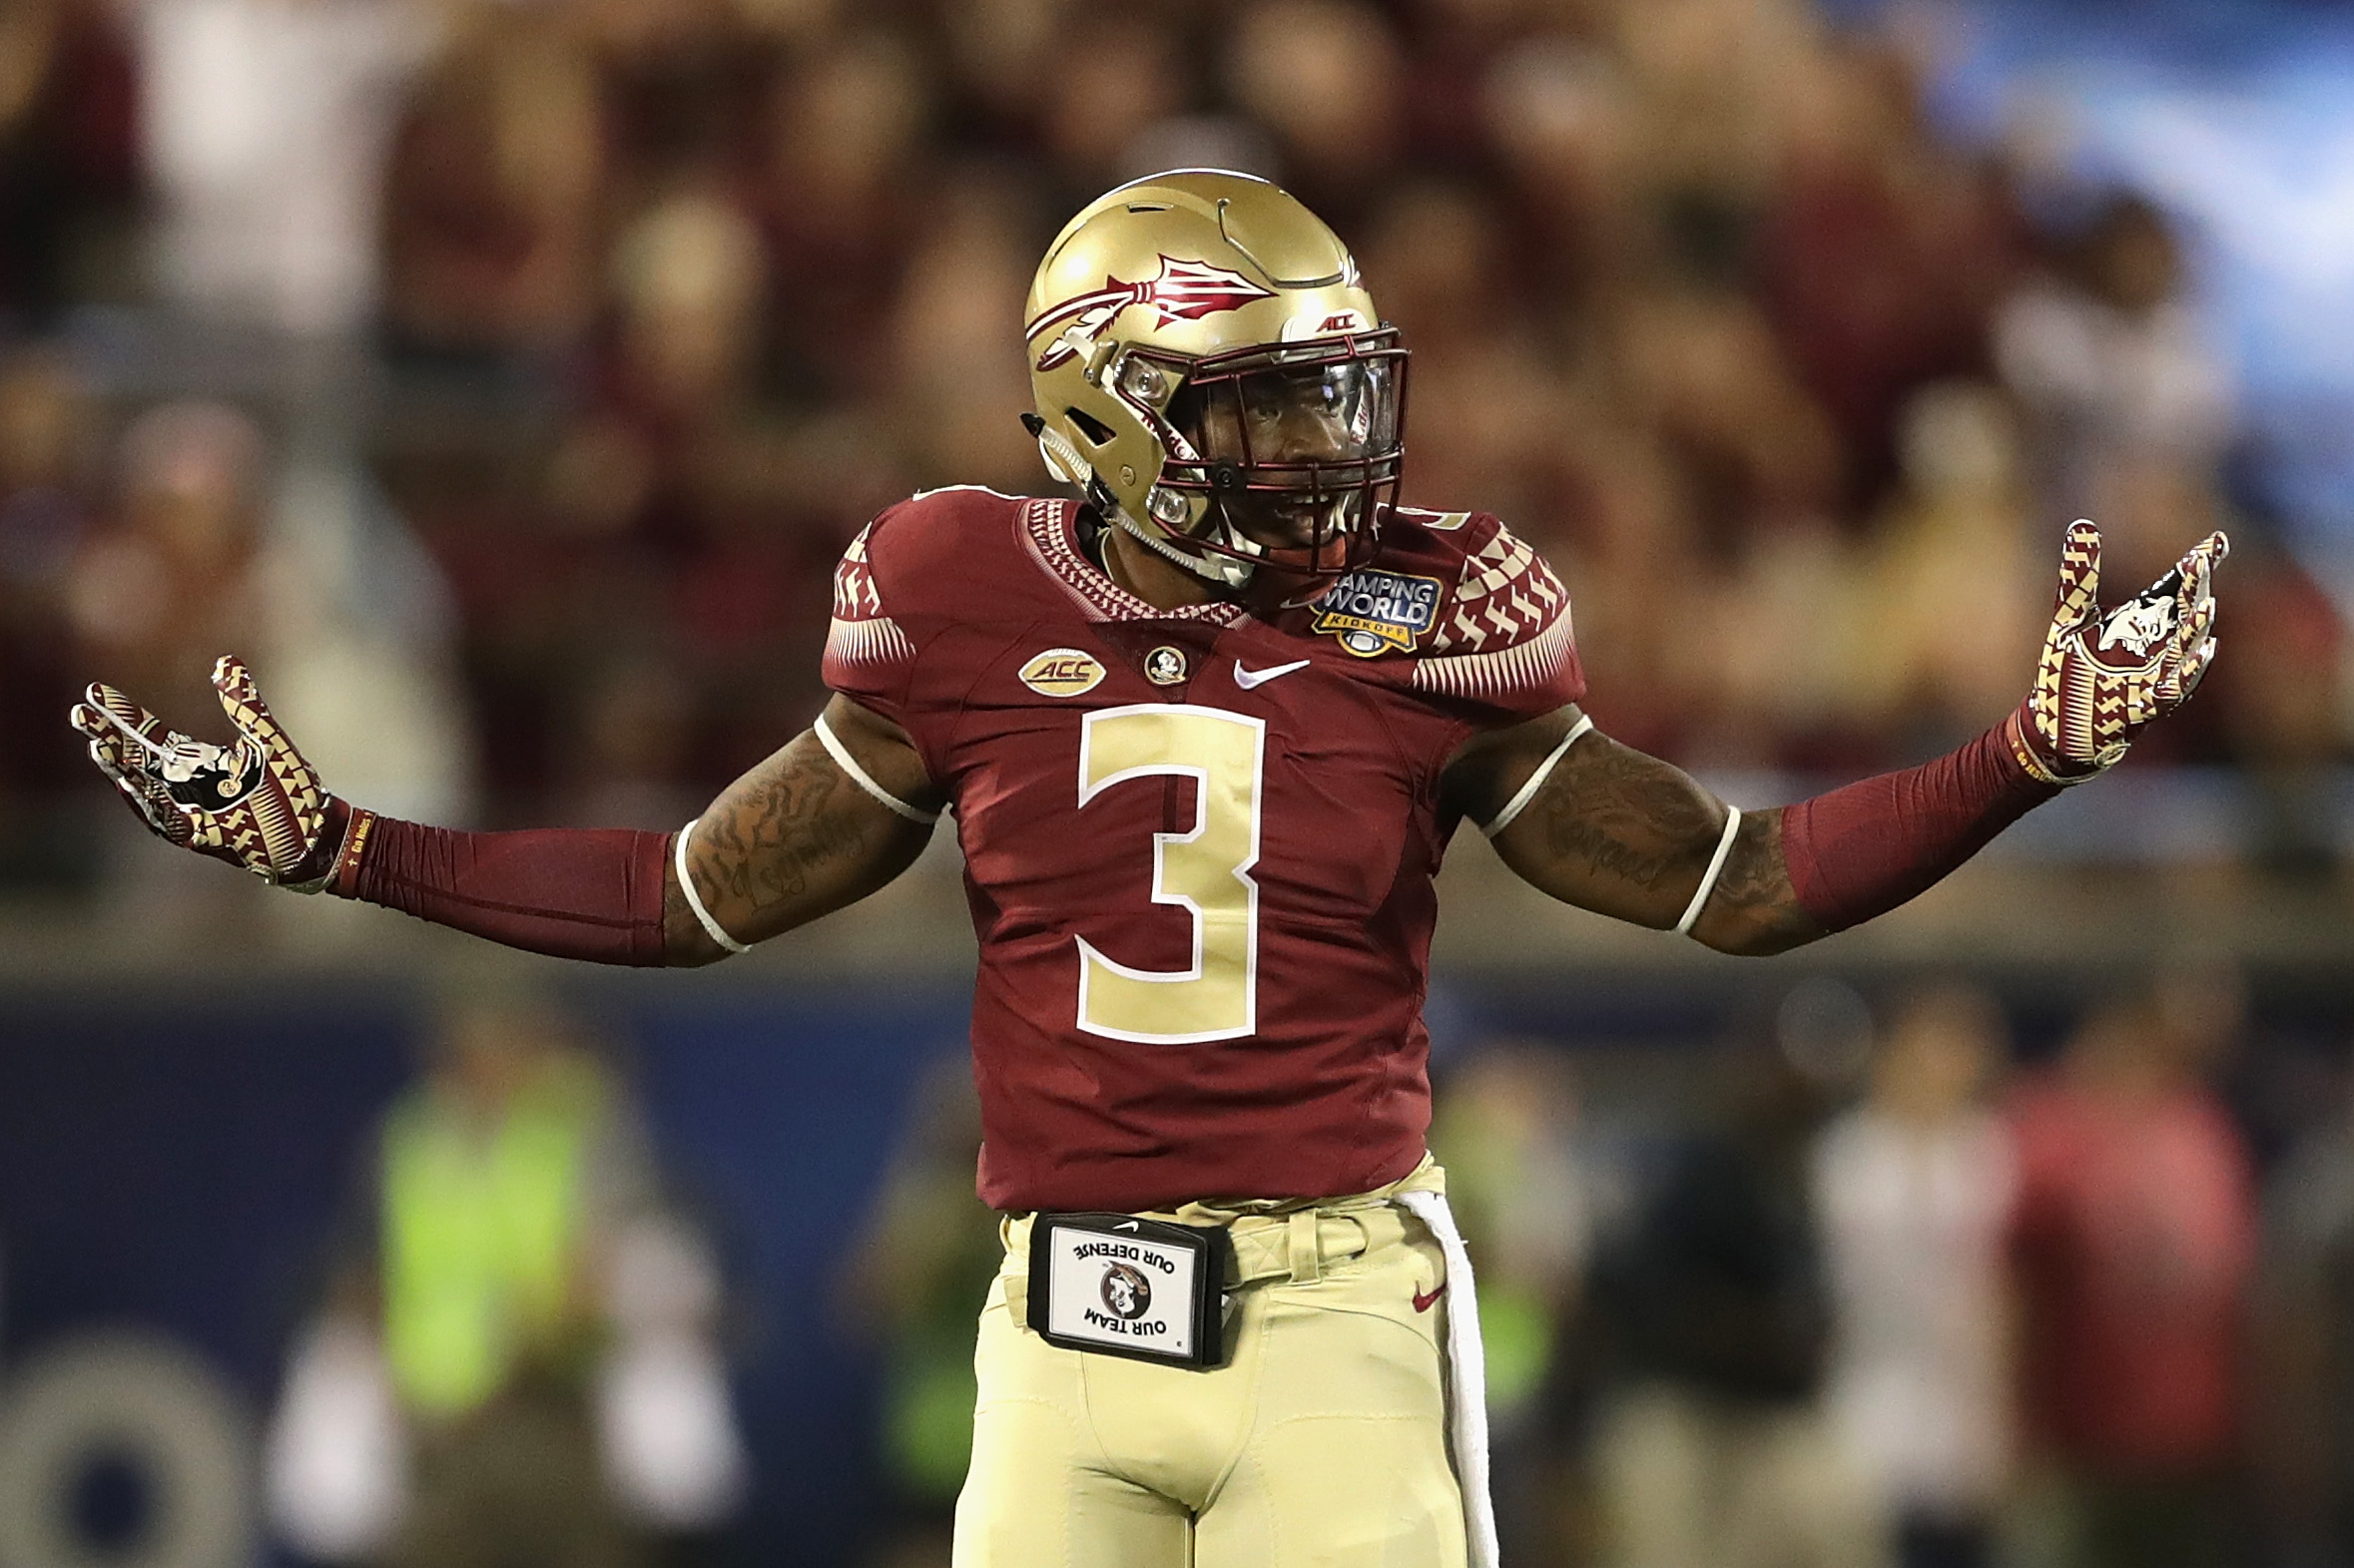 Fsu football 5 players noles cant afford to lose in 2017 page 2 orlando fl september 05 derwin james 3 of the florida state seminoles reacts in the first half against the mississippi rebels during the camping world voltagebd Image collections